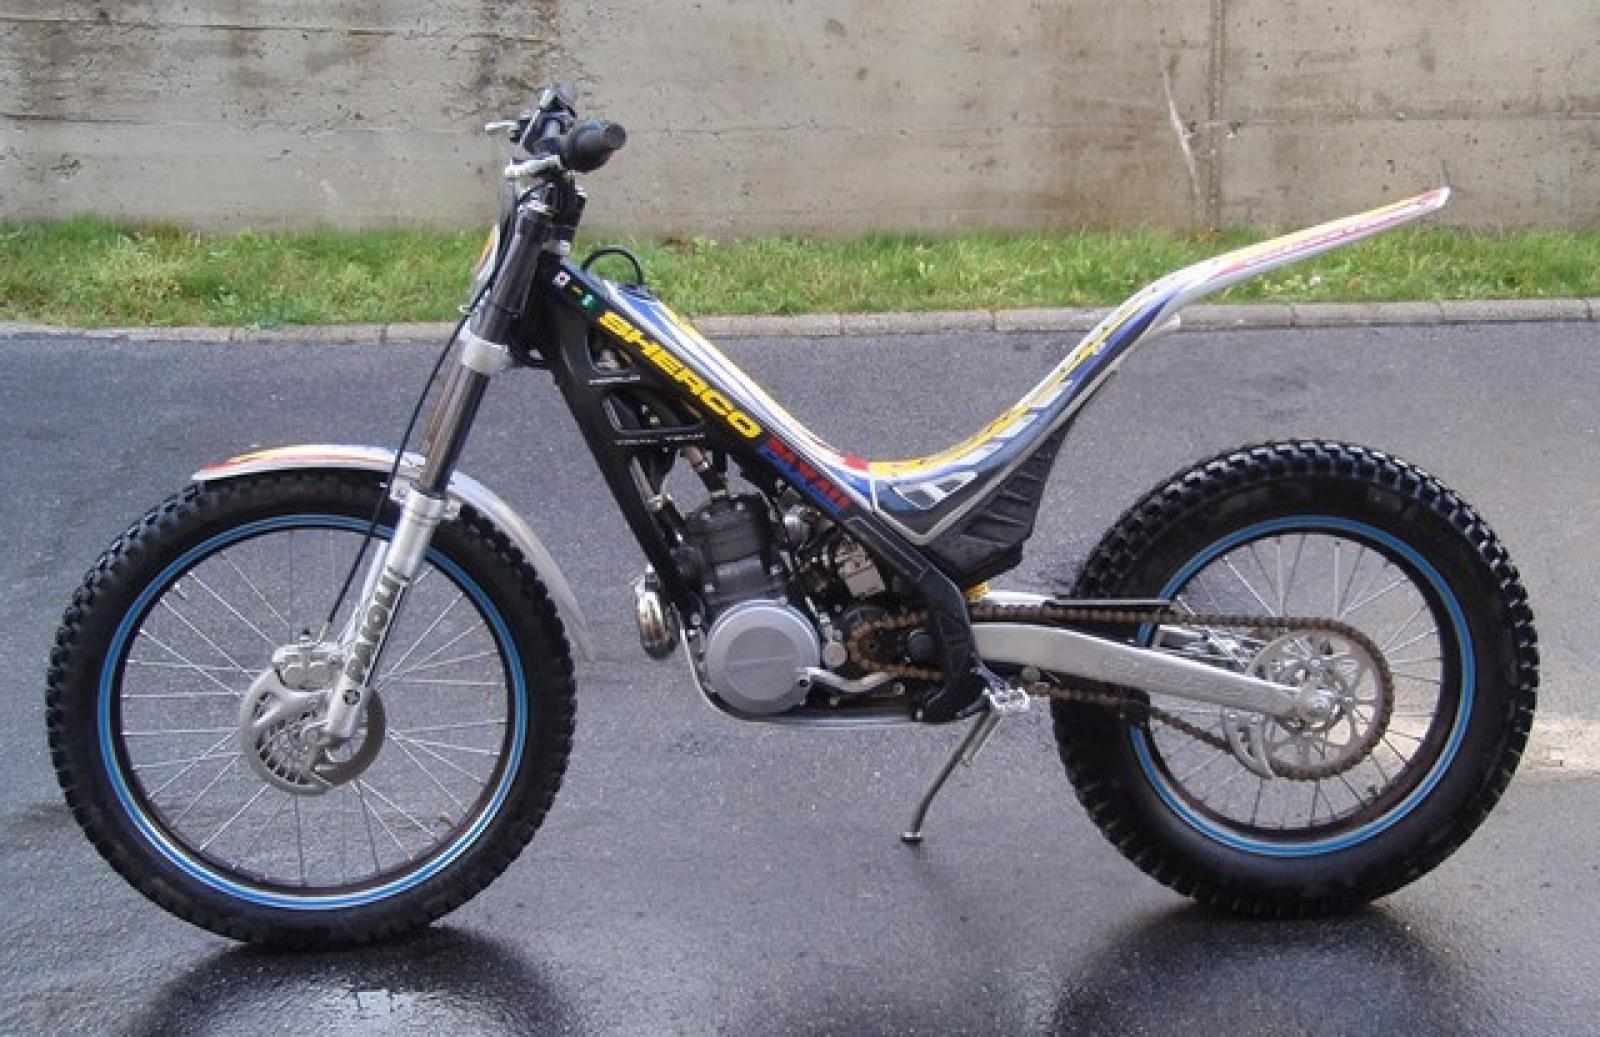 Sherco 125 Enduro Shark Replica images #124643